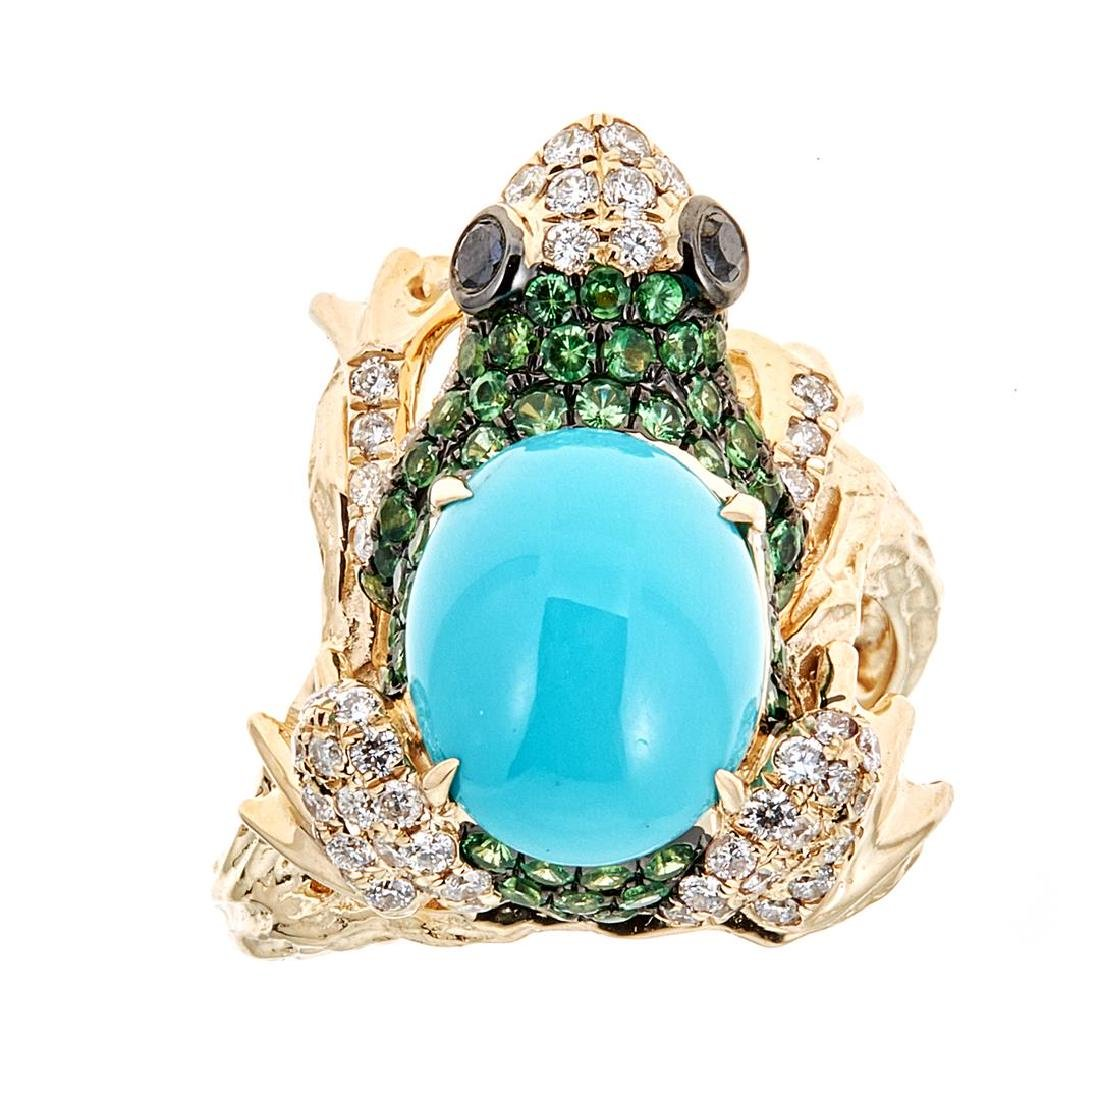 2.82 ctw Turquoise, Tsavorite and Diamond Ring - 14KT